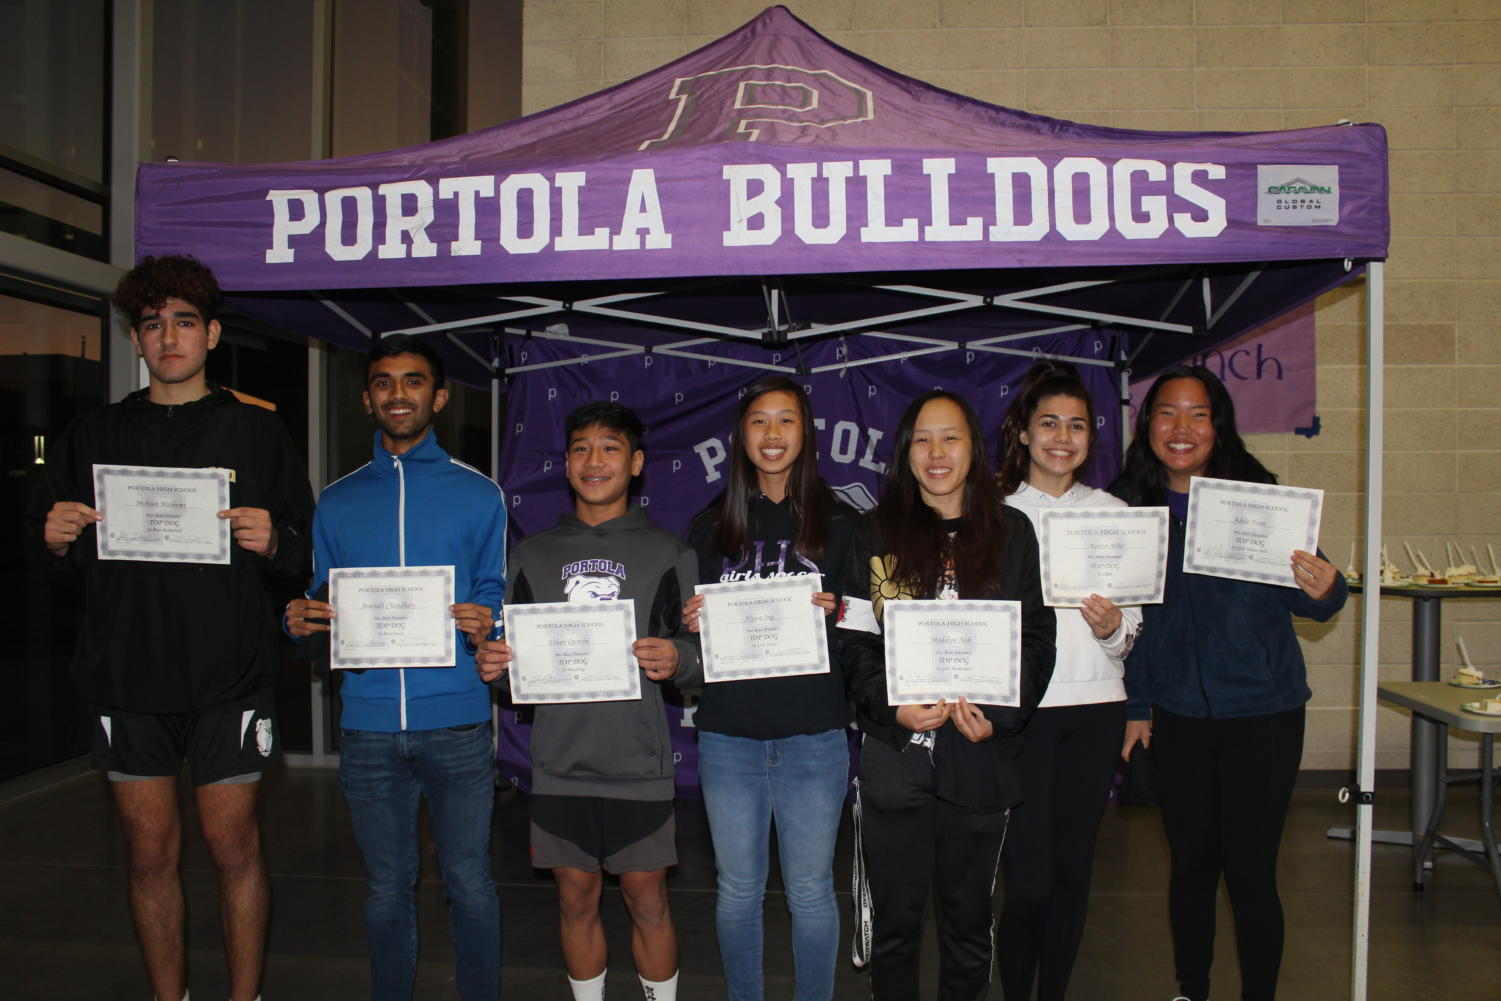 Winter Top Dog award recipients lined up after a night of food and speeches in their honor. Athletes include: junior Mohsen Hashemi, junior Anirudh Chaudhary, freshman Ethan Qureshi, junior Alyssa Ing, junior Madelyn Noh, sophomore Kaitlyn Miller and sophomore Adele Yoon.